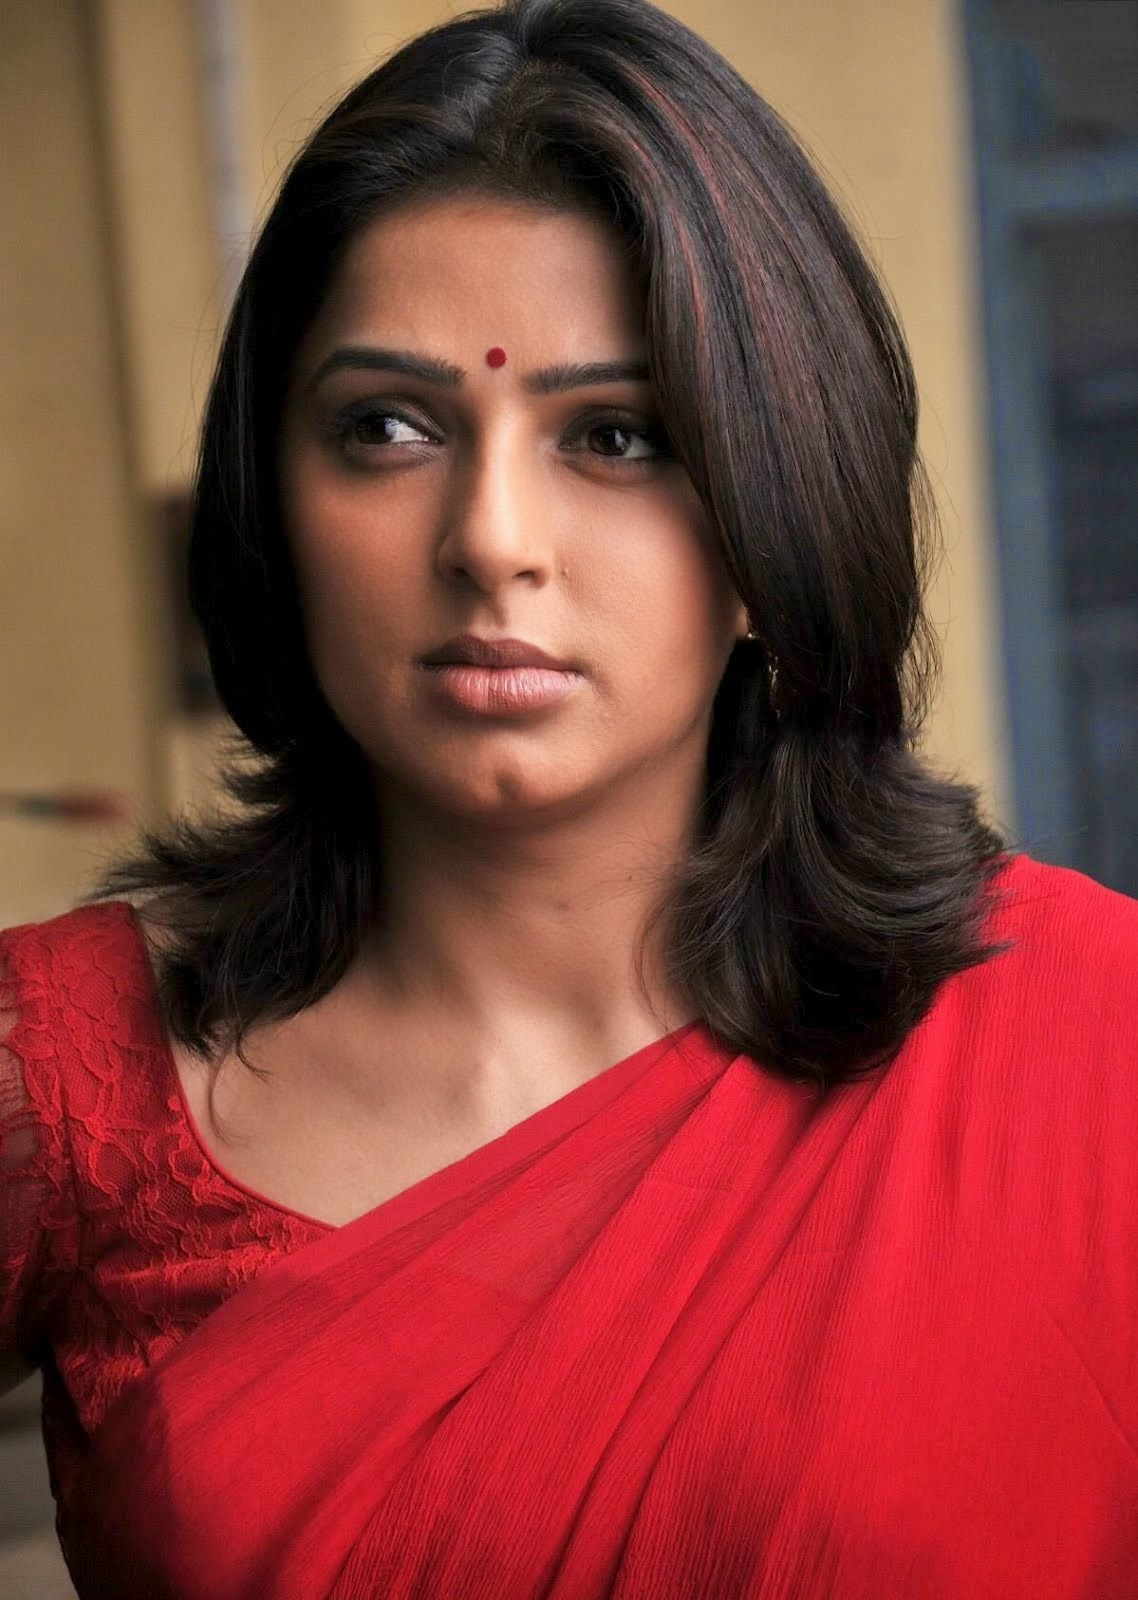 Bhoomika Chawla Hot pics in red saree hot pics unseen rare pics of bhoomika chawla hd hot pics